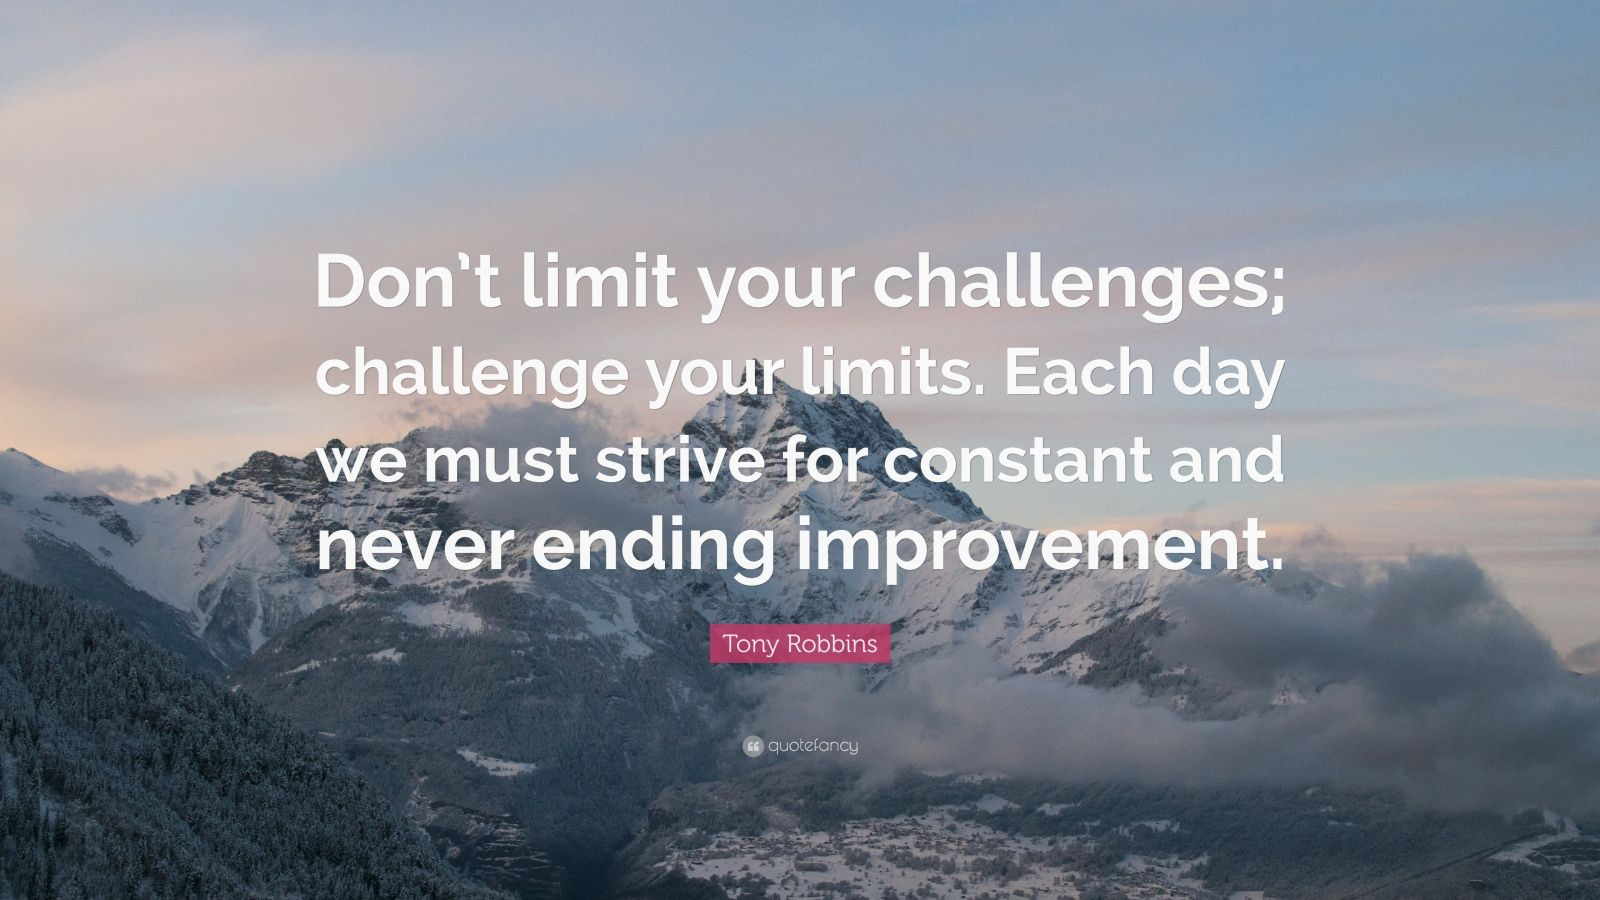 "Challenges Quotes: ""Don't limit your challenges; challenge your limits. Each day we must strive for constant and never ending improvement."" — Tony Robbins"